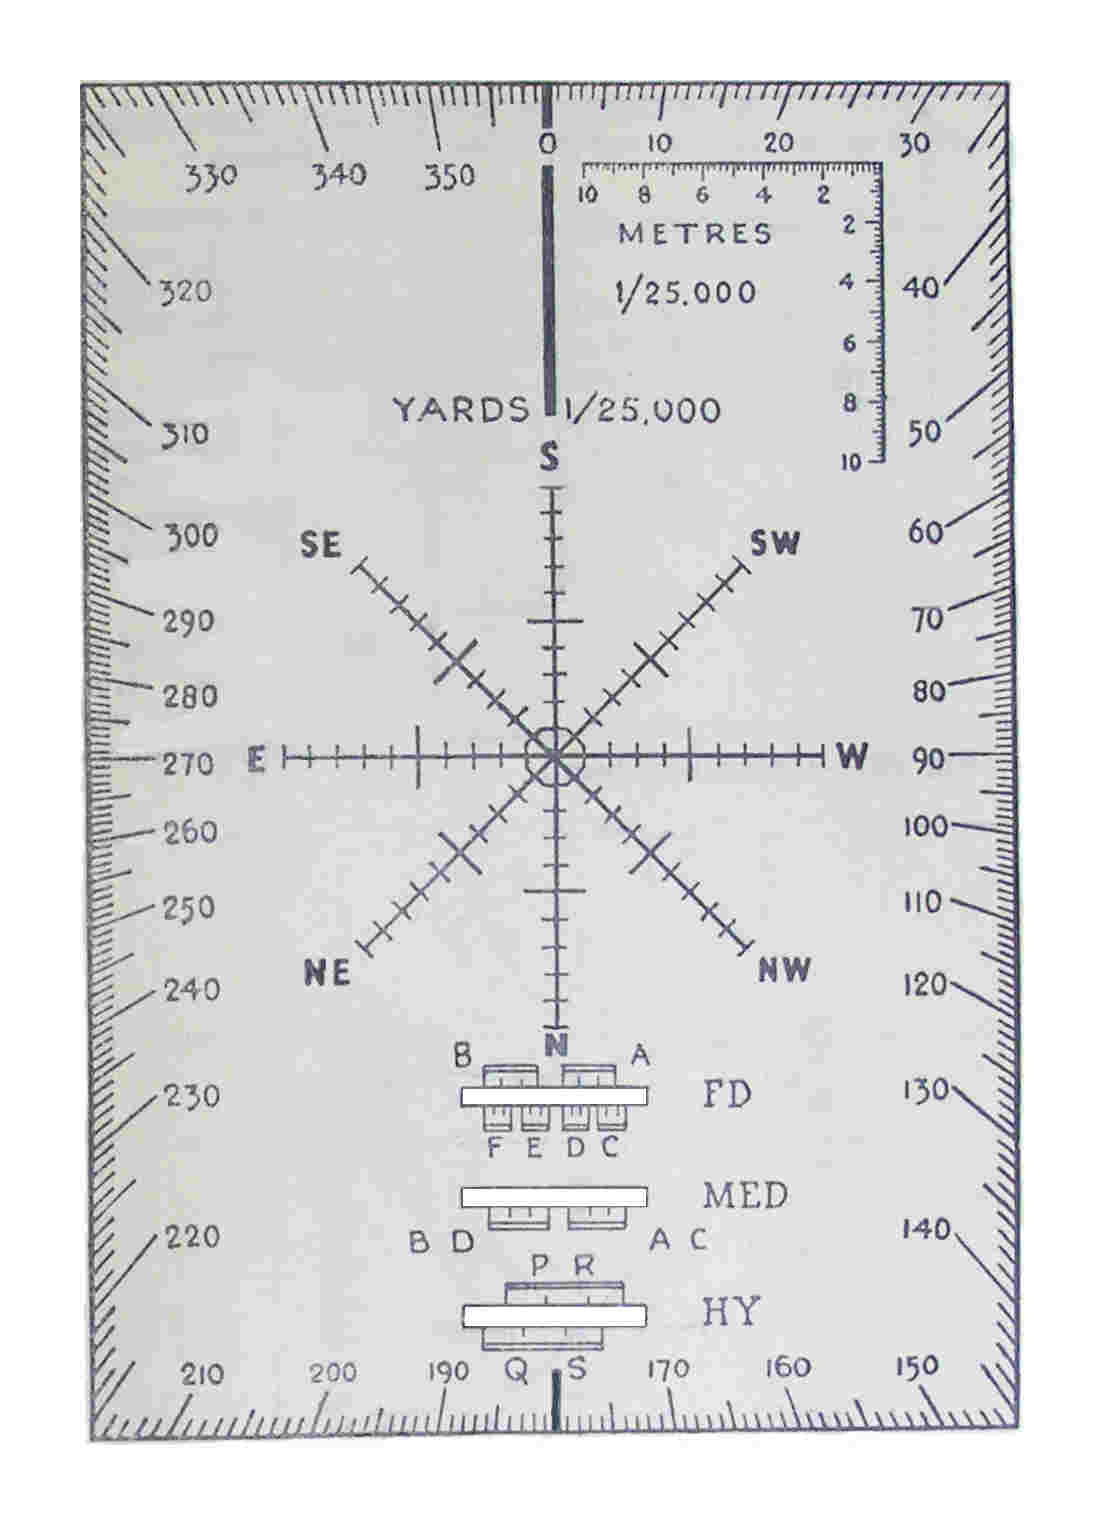 Protractor for plotting cardianl point corrections and standard stonks